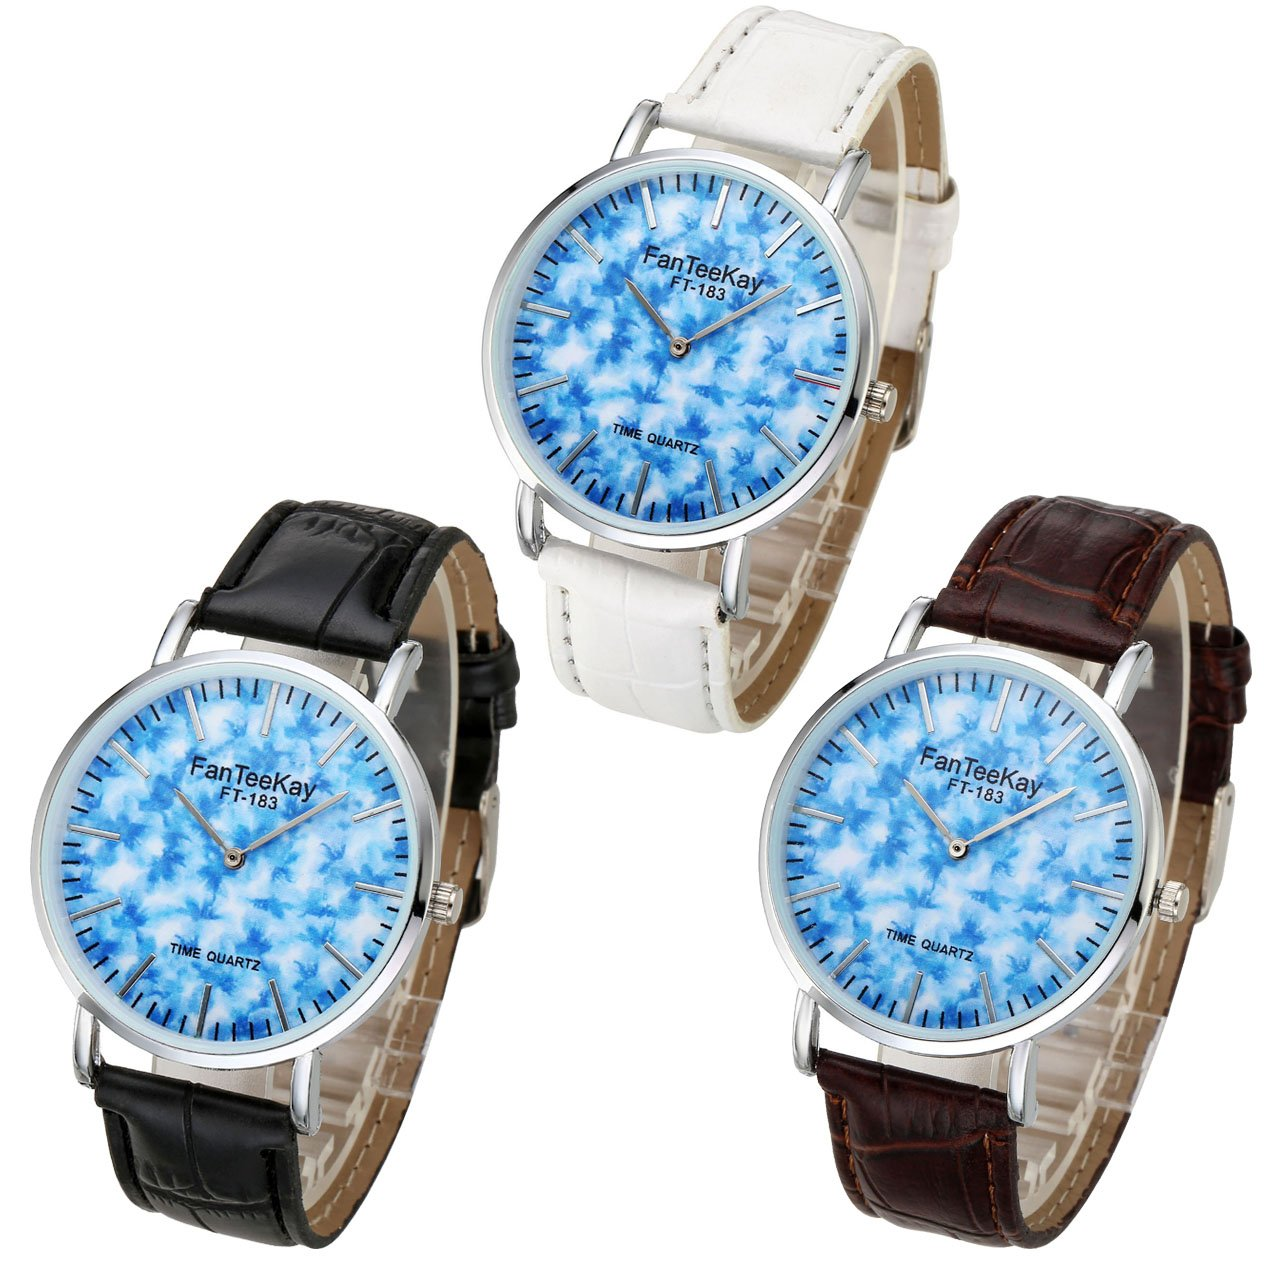 Top Plaza Unisex Casual Simple Silver Tone Analog Quartz Watch Blue Dial PU Leather Strap Wrist Watch(Set of 3)